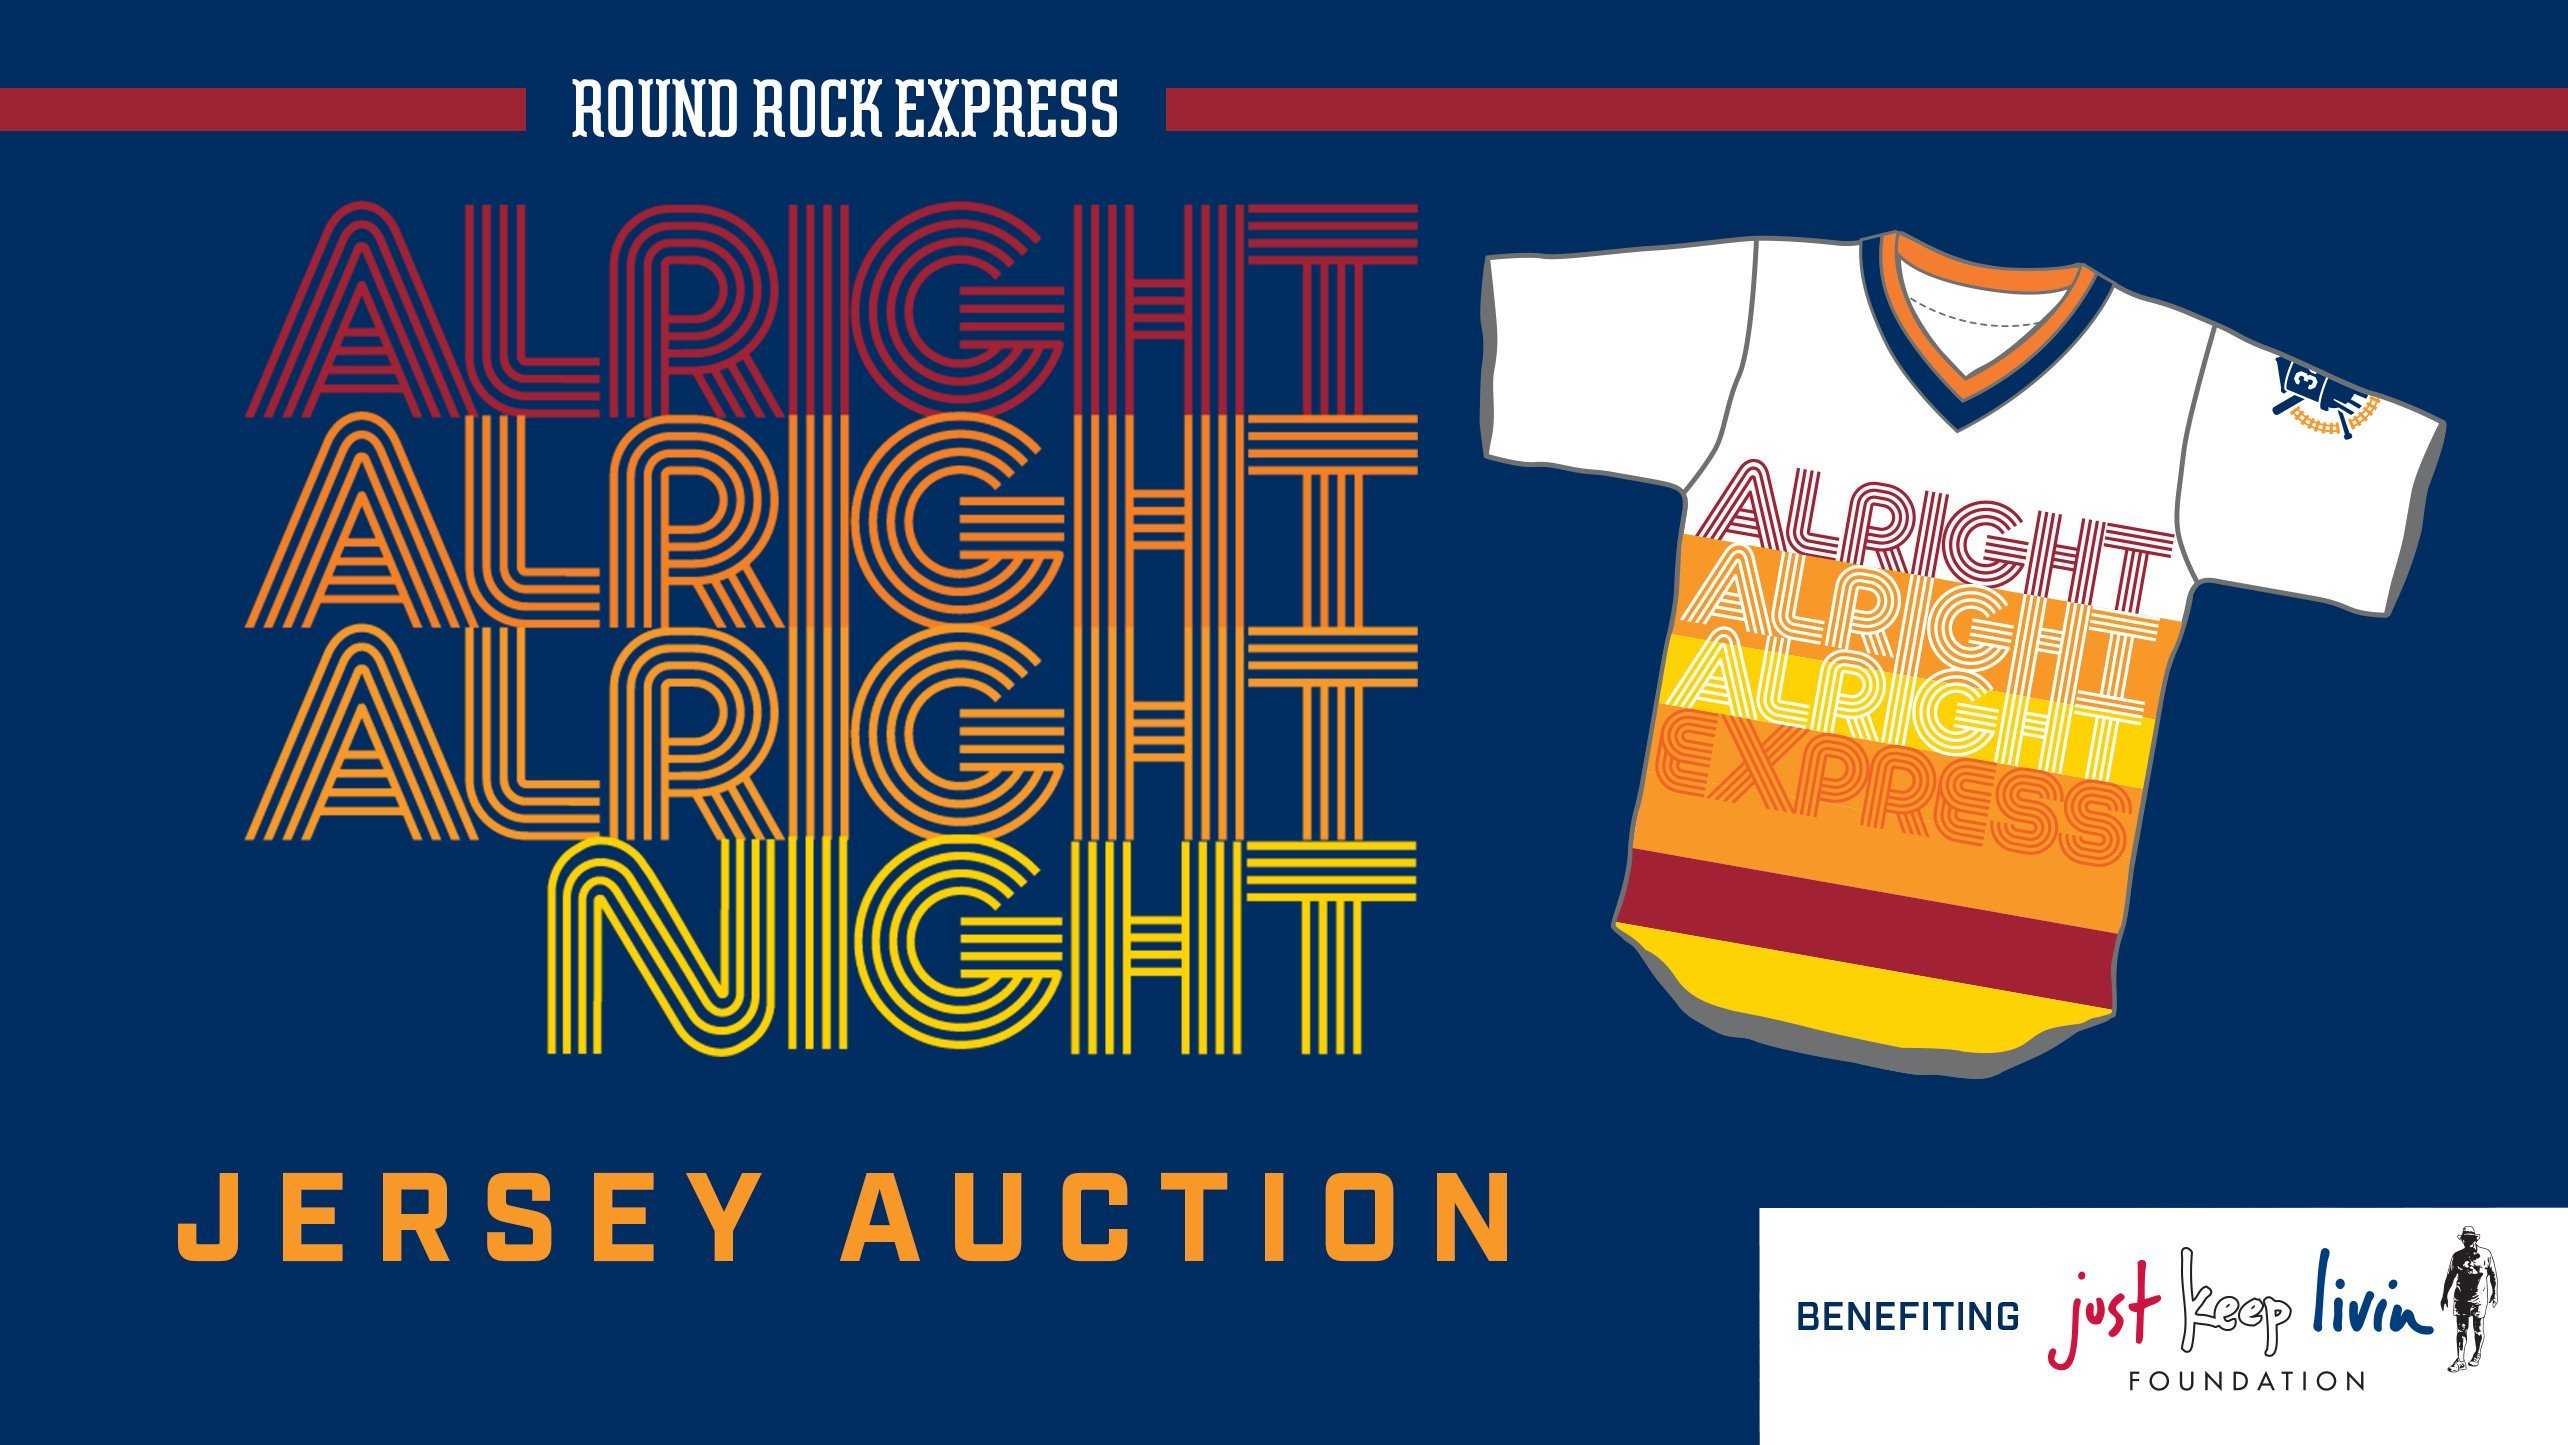 Round Rock Express Alright Alright Alright Jersey Auction